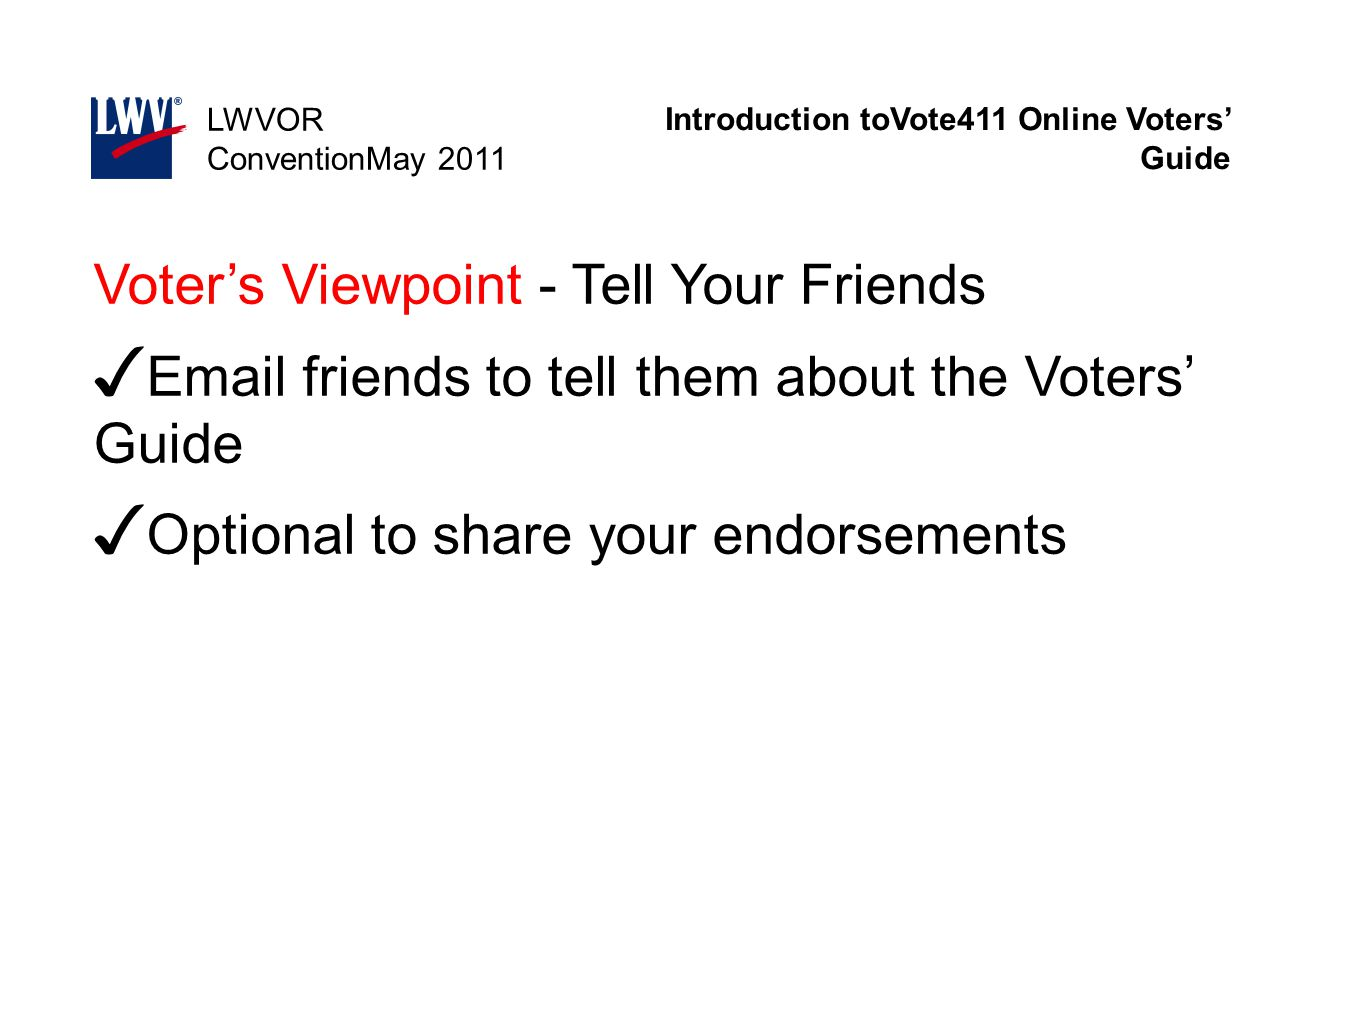 Introduction toVote411 Online Voters' Guide LWVOR ConventionMay 2011 Voter's Viewpoint - Tell Your Friends ✓ Email friends to tell them about the Vote